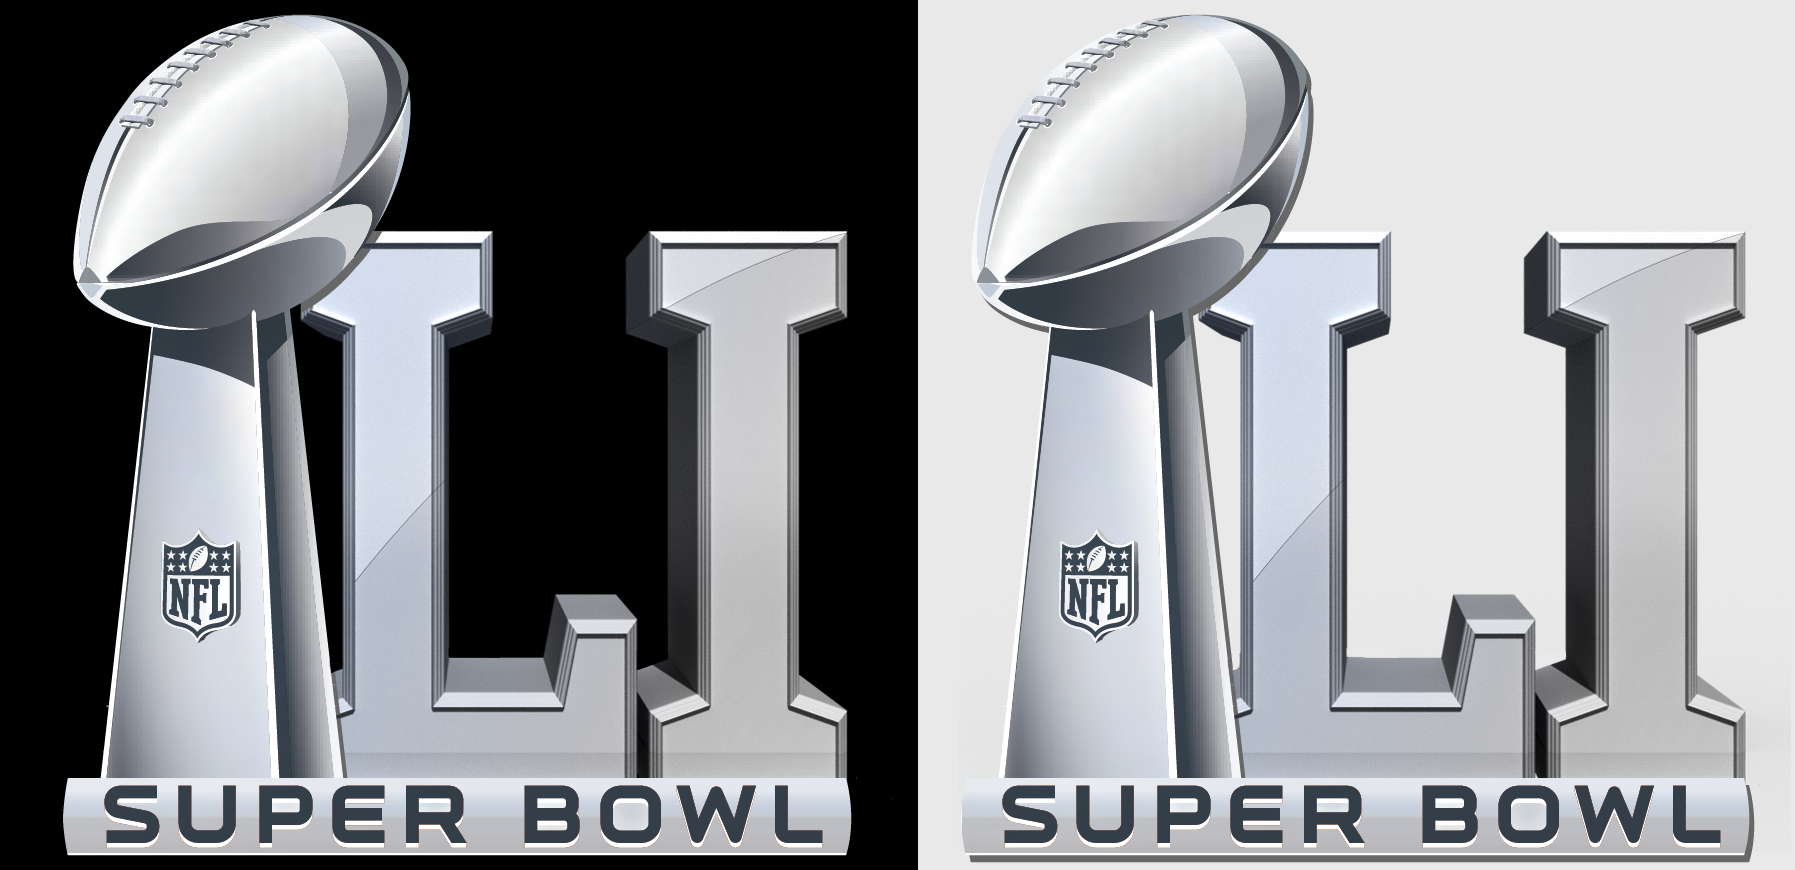 Super Bowl Li PNG Transparent Super Bowl Li.PNG Images.